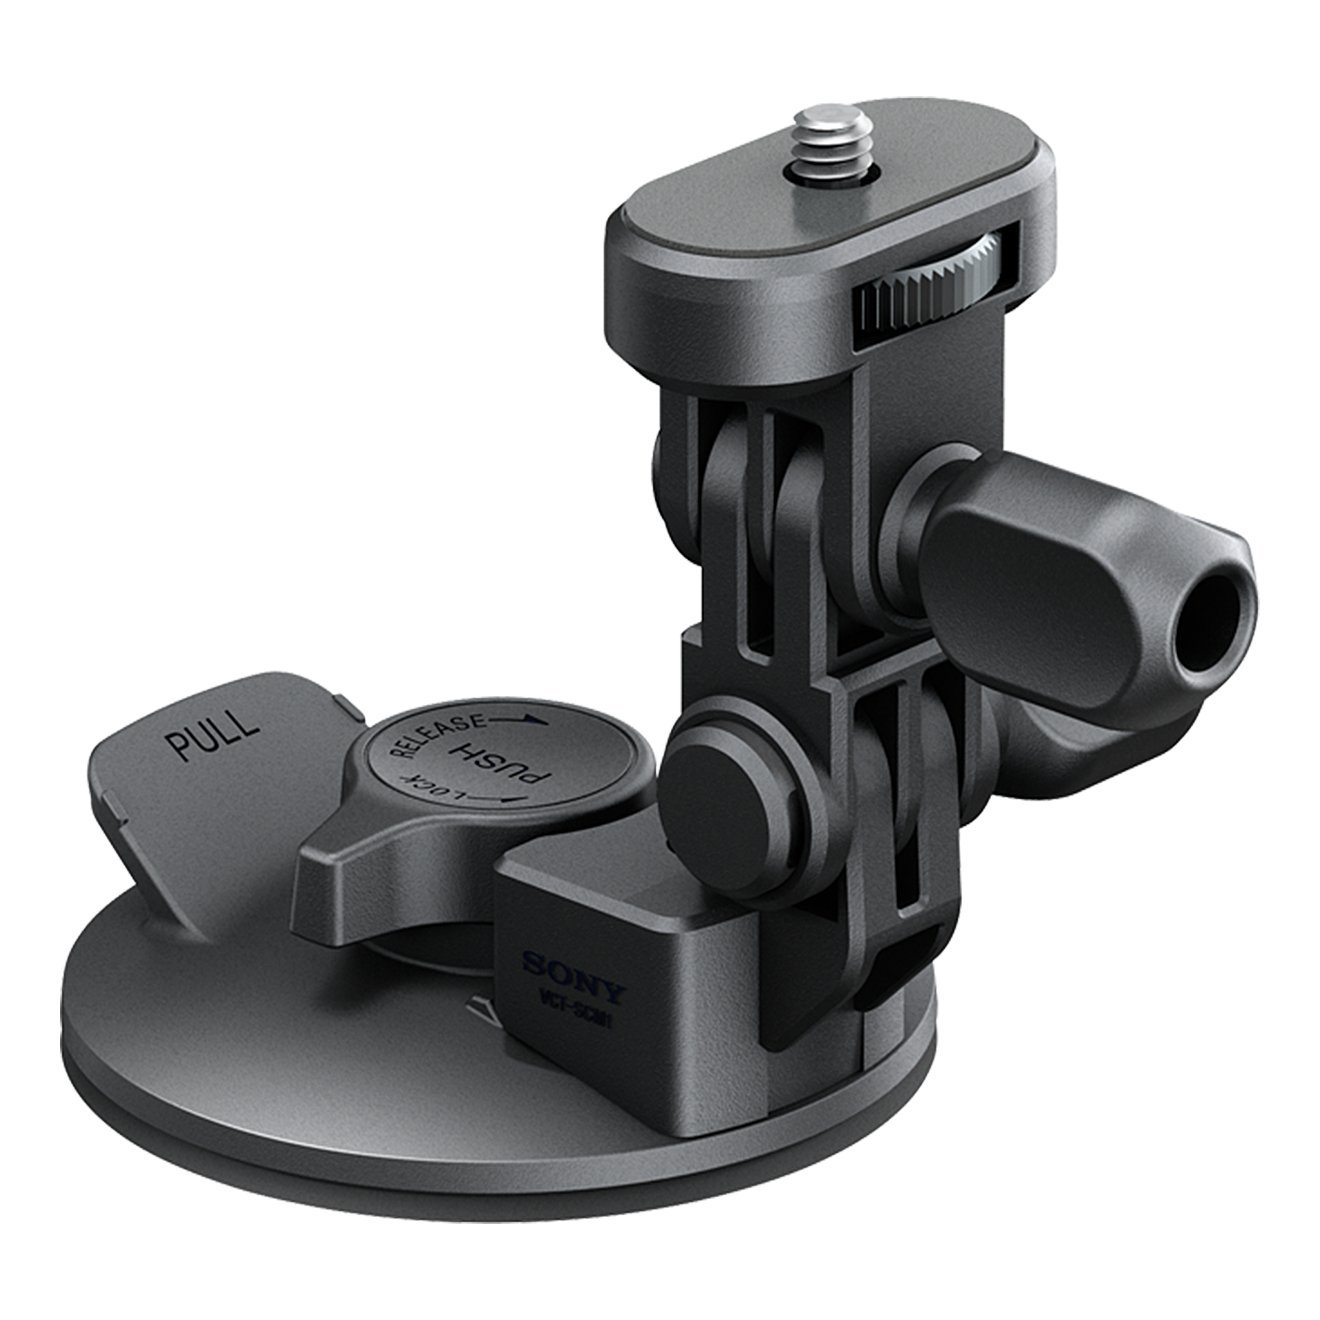 Sony VCT SCM1 Suction Cup Mount for Action Camerareviews and more information